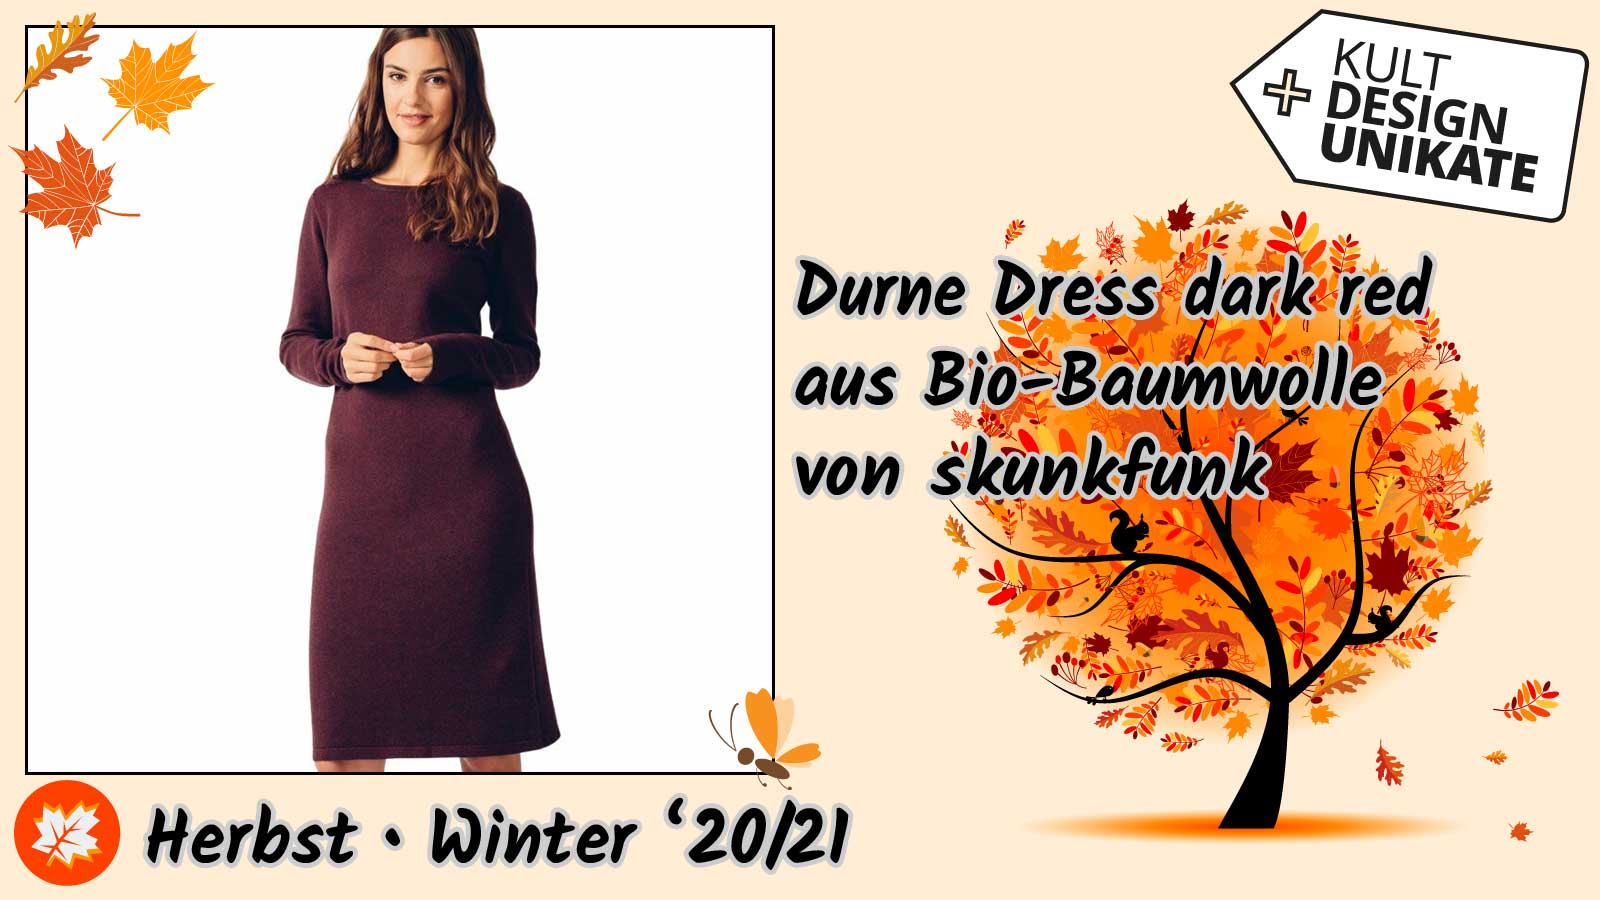 skunkfunk-Durne-Dress-dark-red